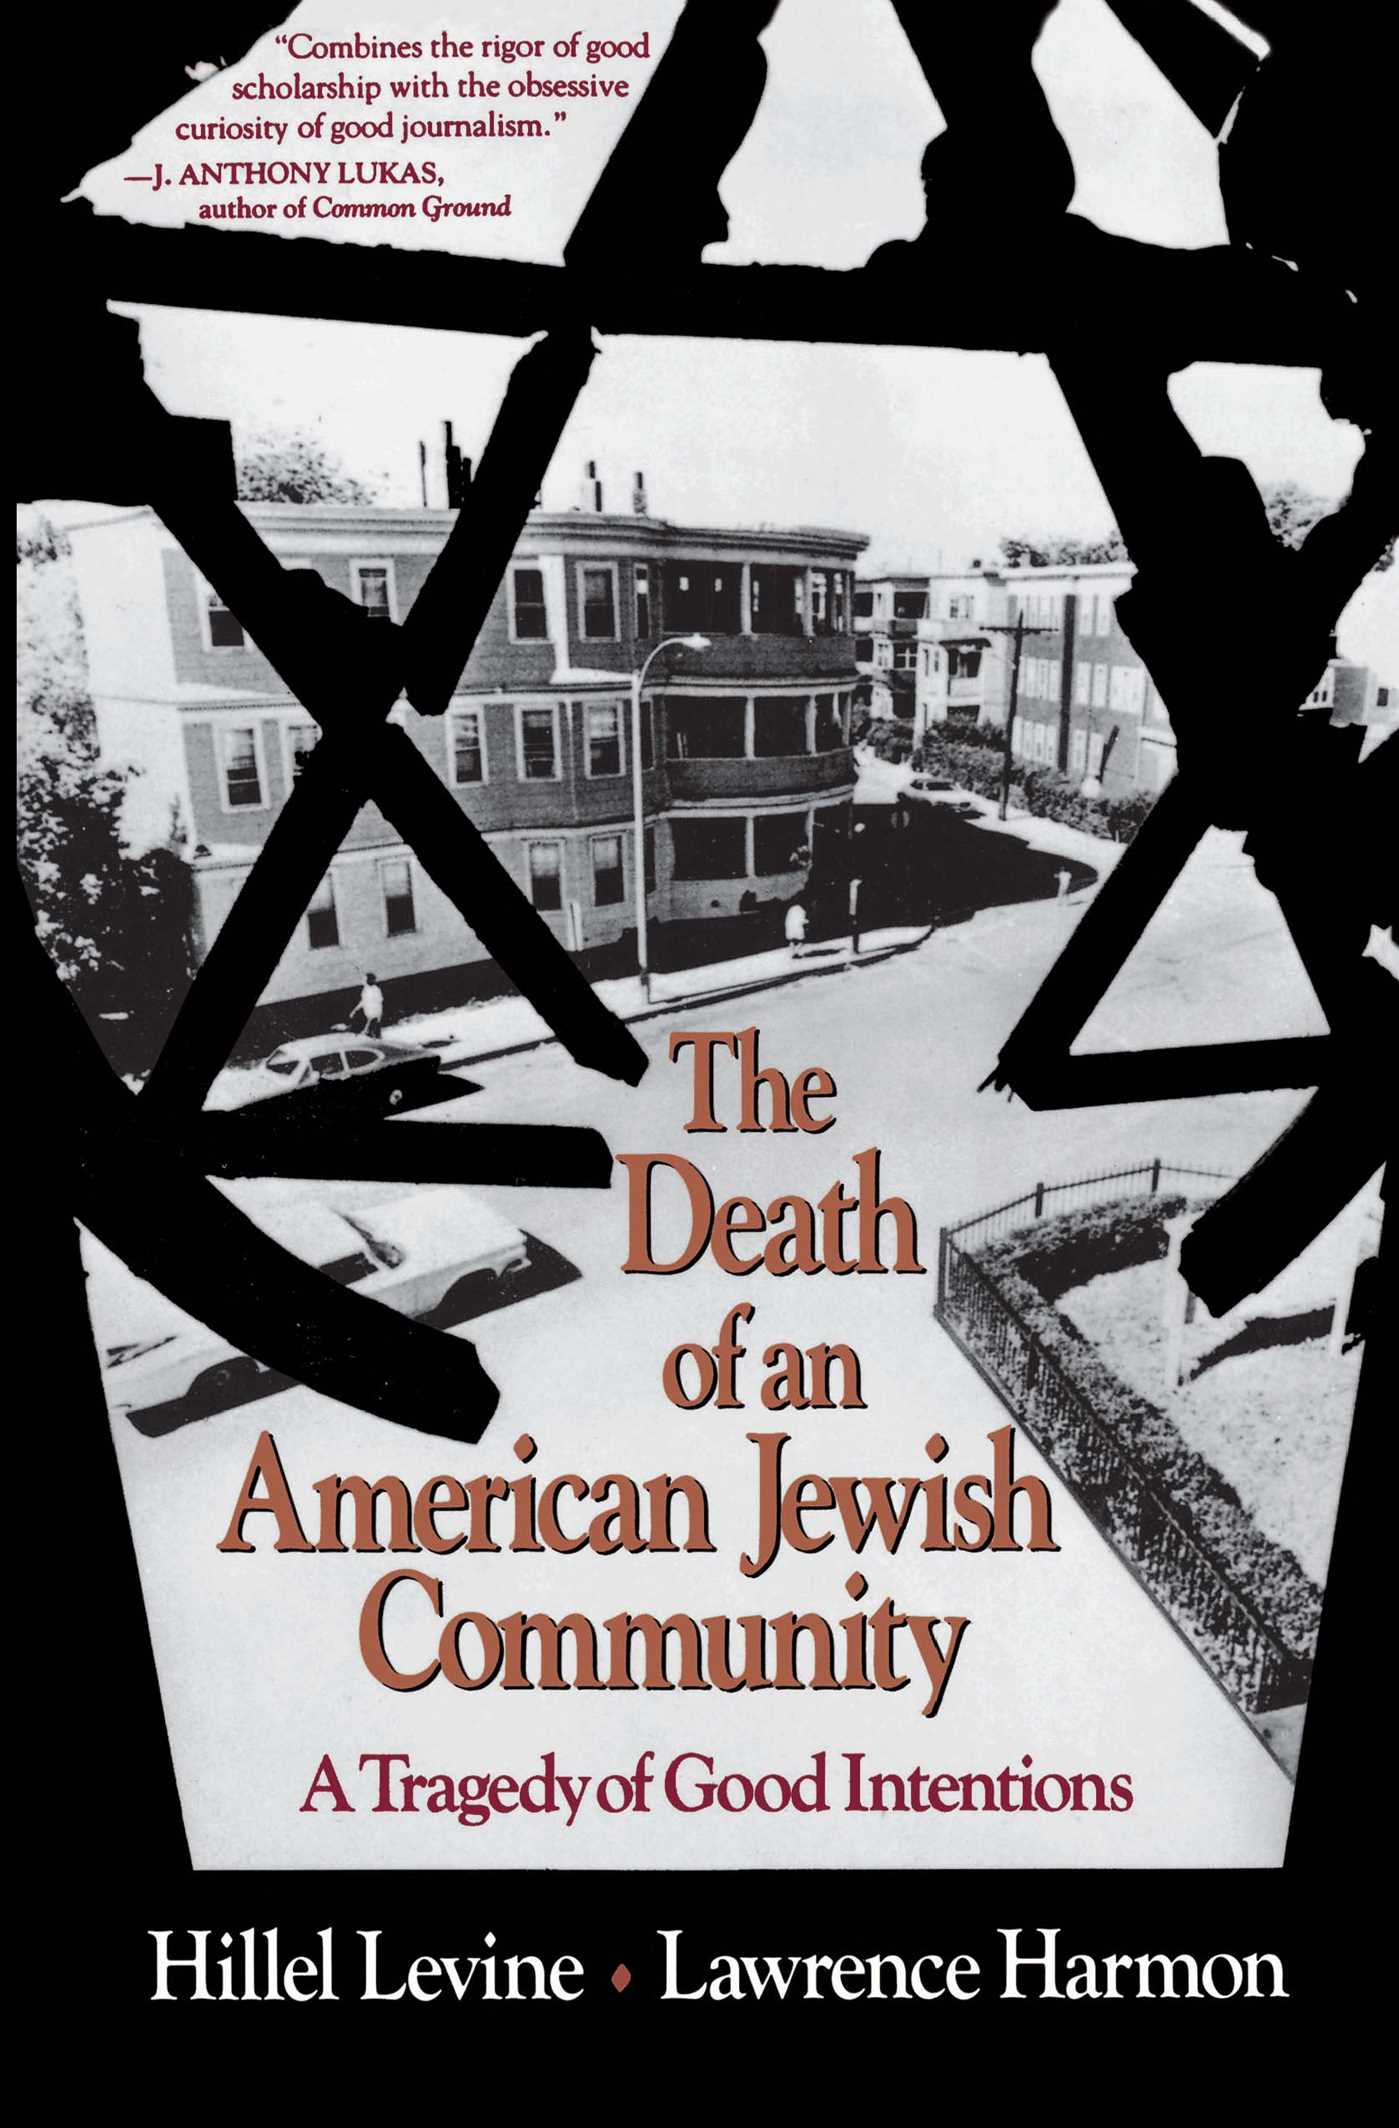 Death-of-an-american-jewish-community-9780029138663_hr